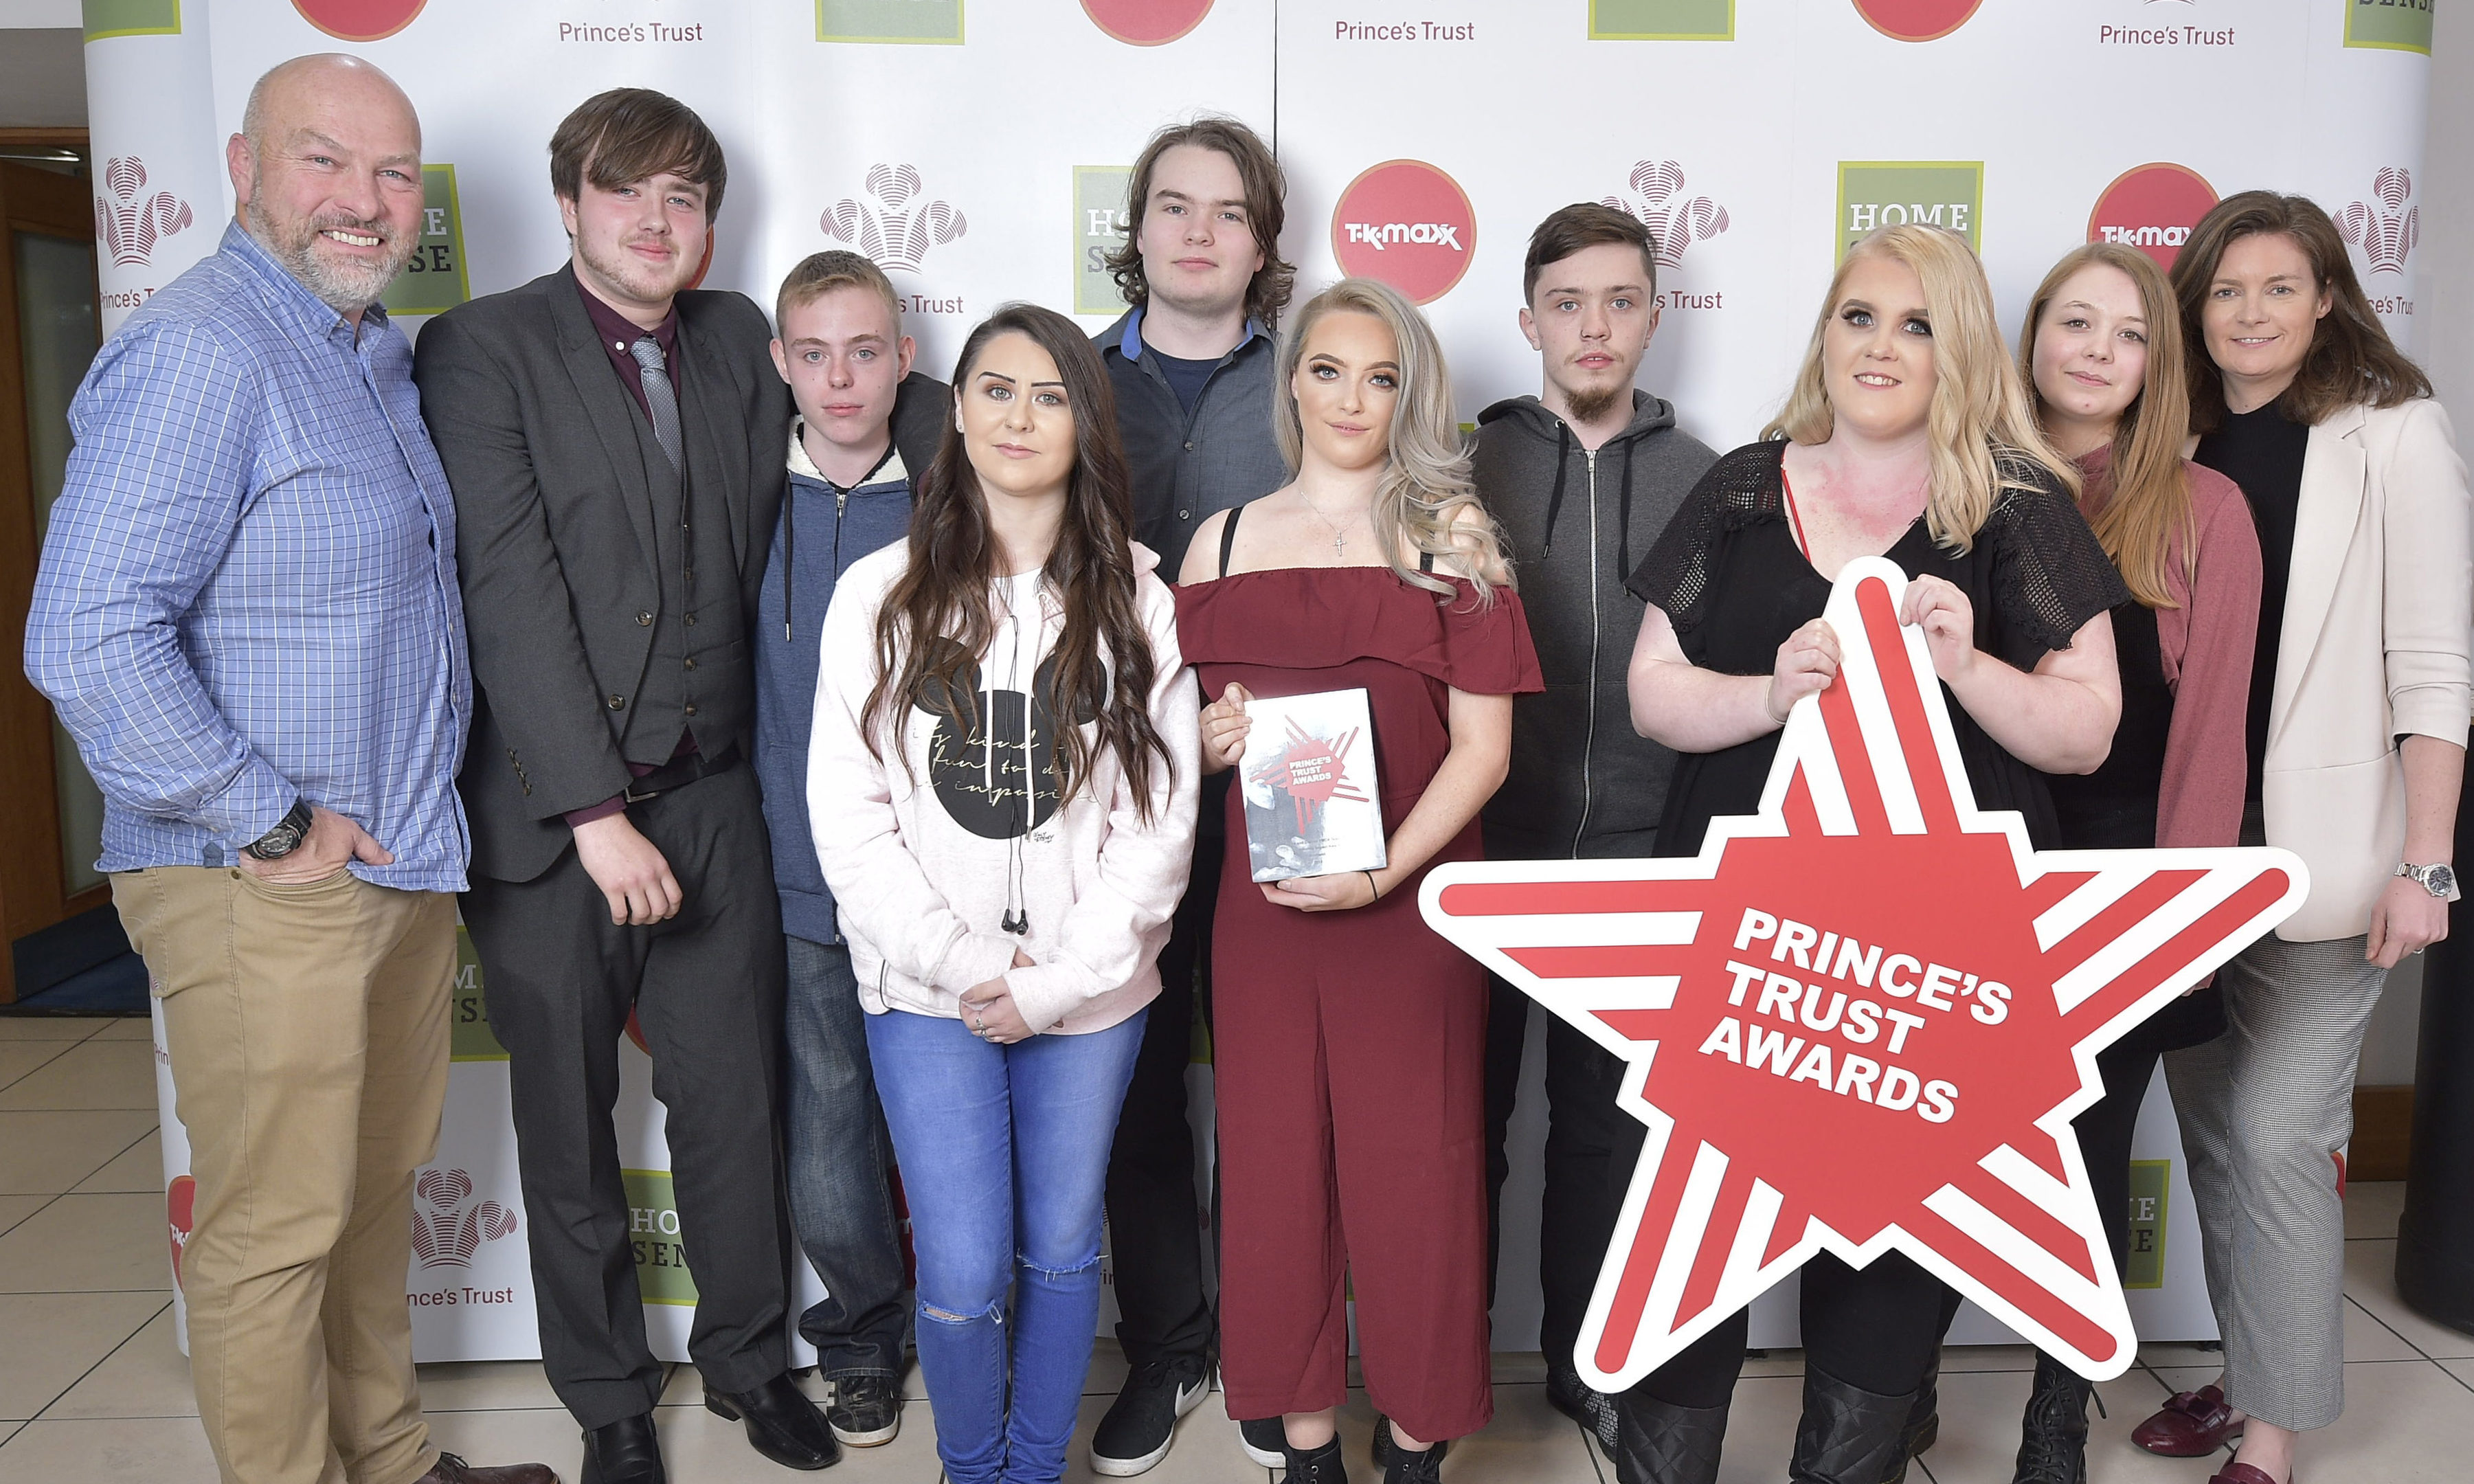 Perth YMCA with their Prince's Trust award